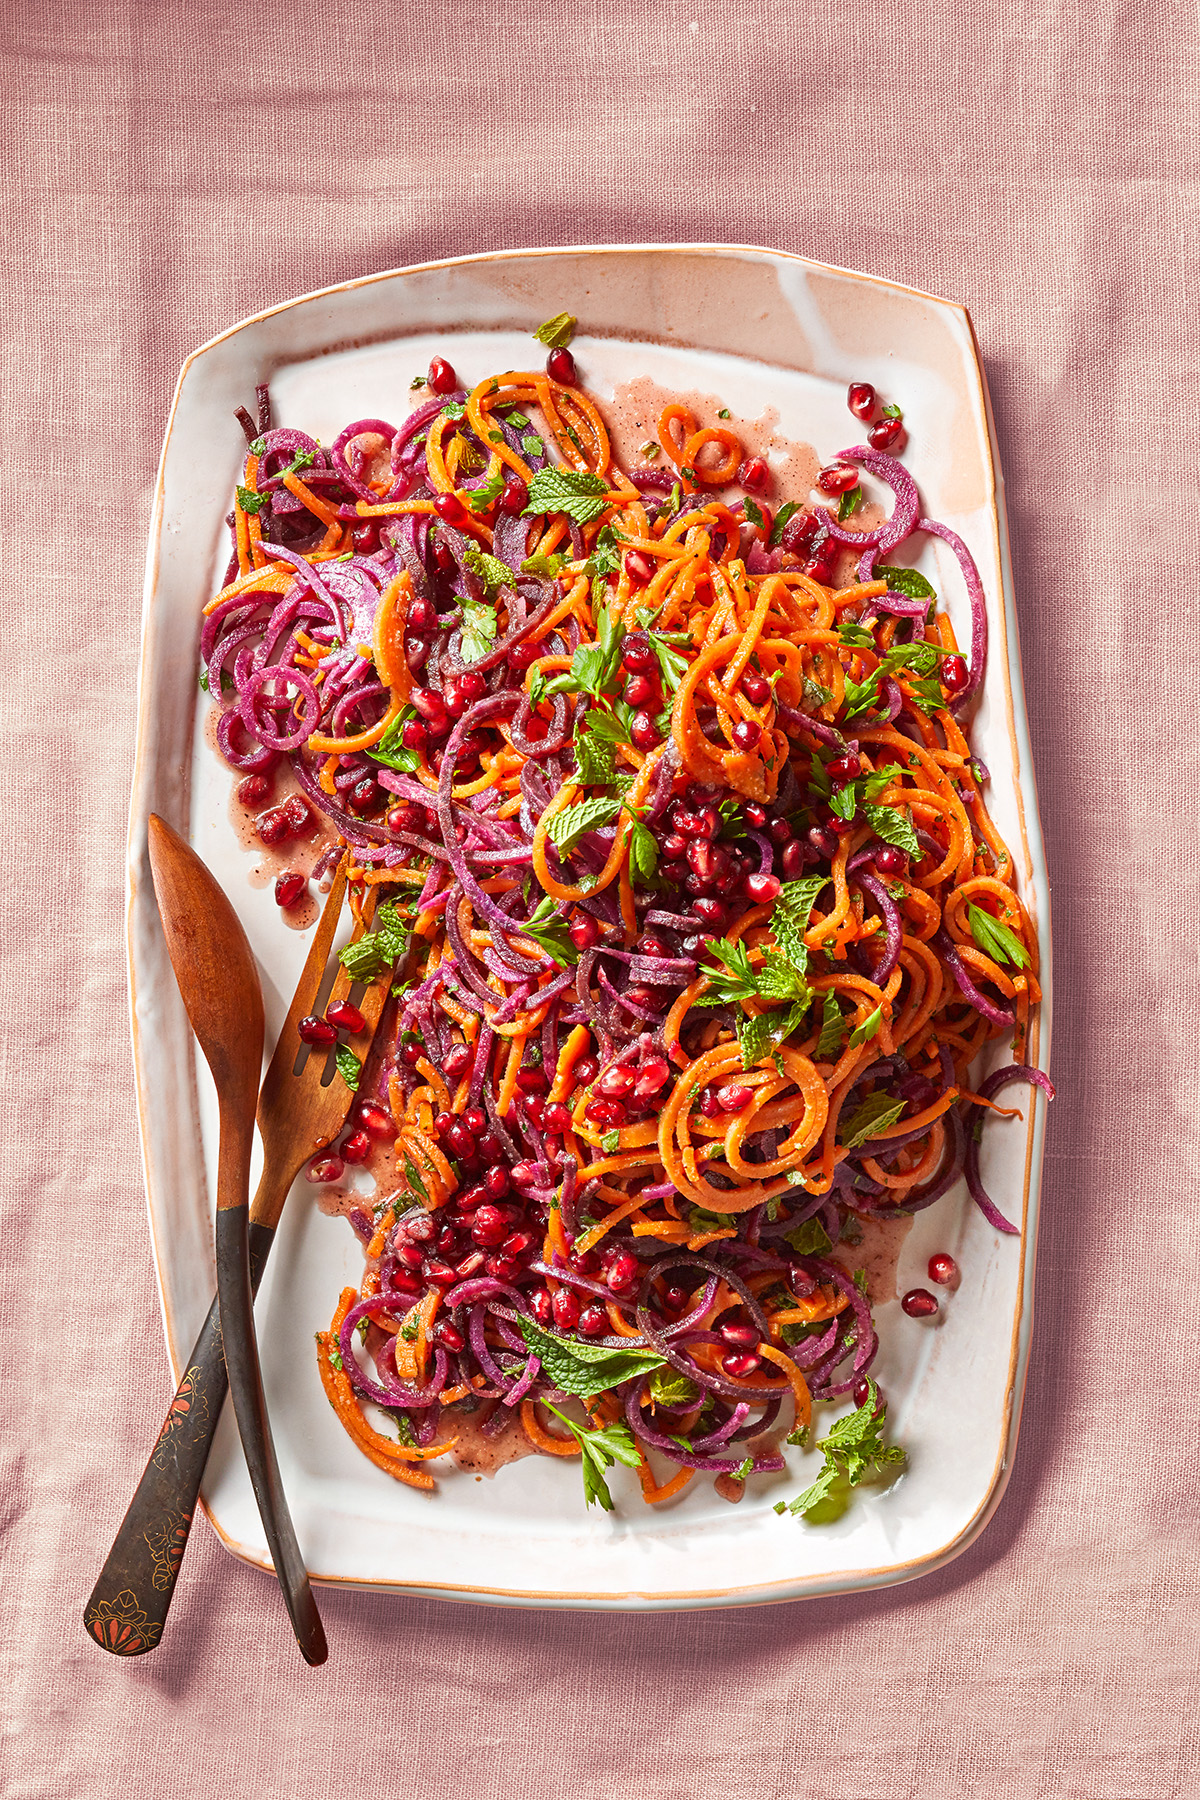 Bowl of spiralized sweet potatoes and pomegranates for Pomegranate-Glazed Sweet Potatoes